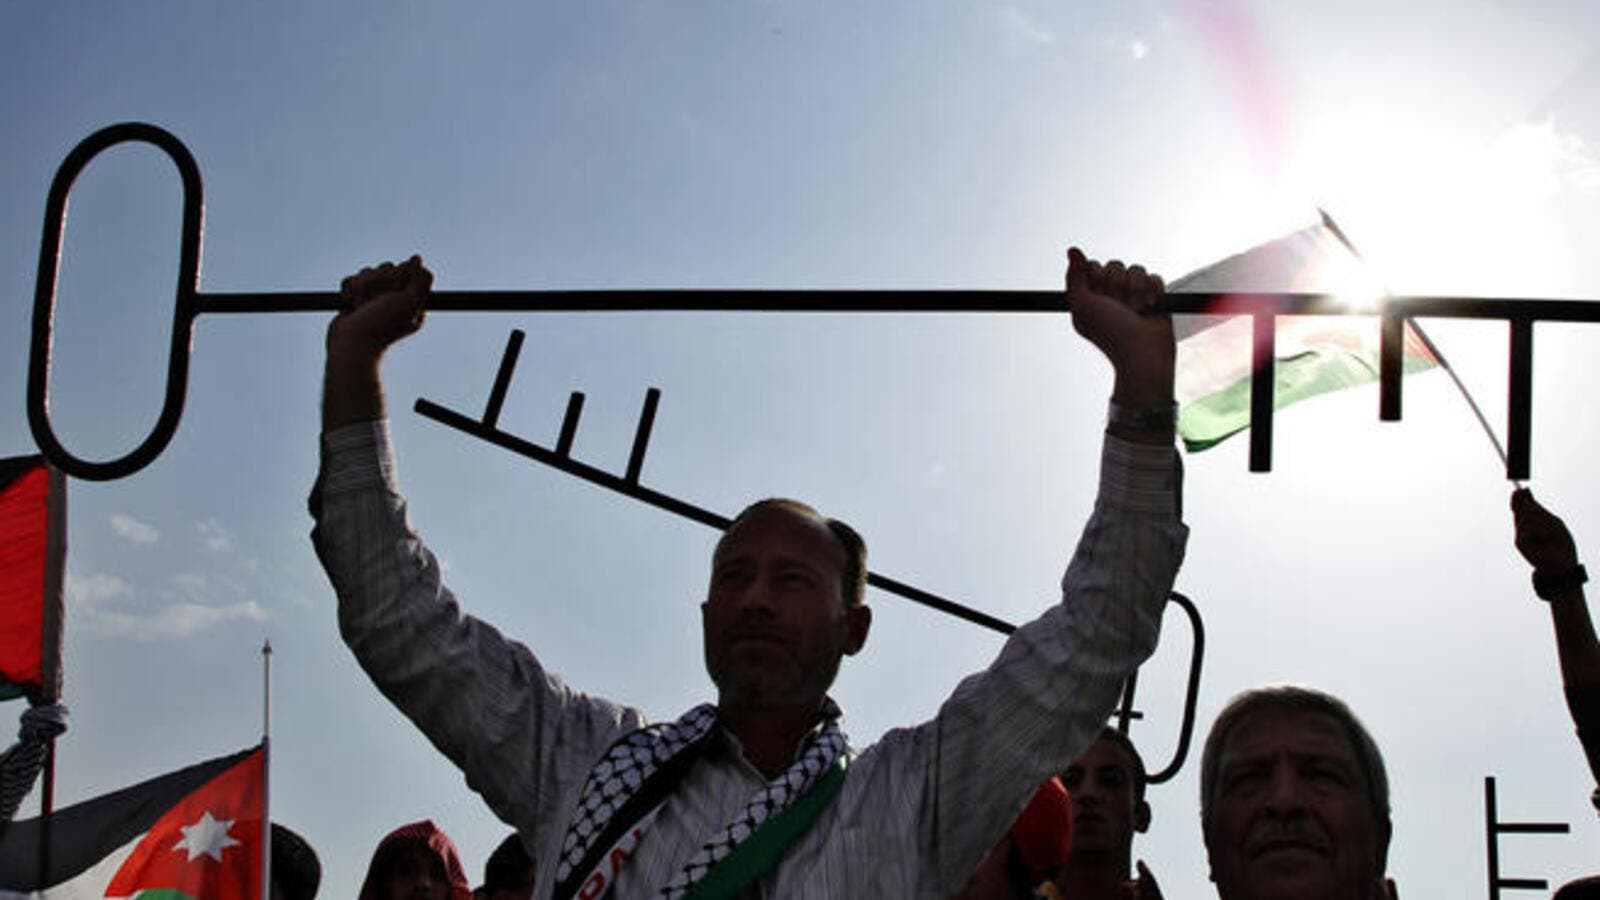 The Palestinian right of return could be about to go into effect if Abbas has his way. (Image courtesy of Reuters)